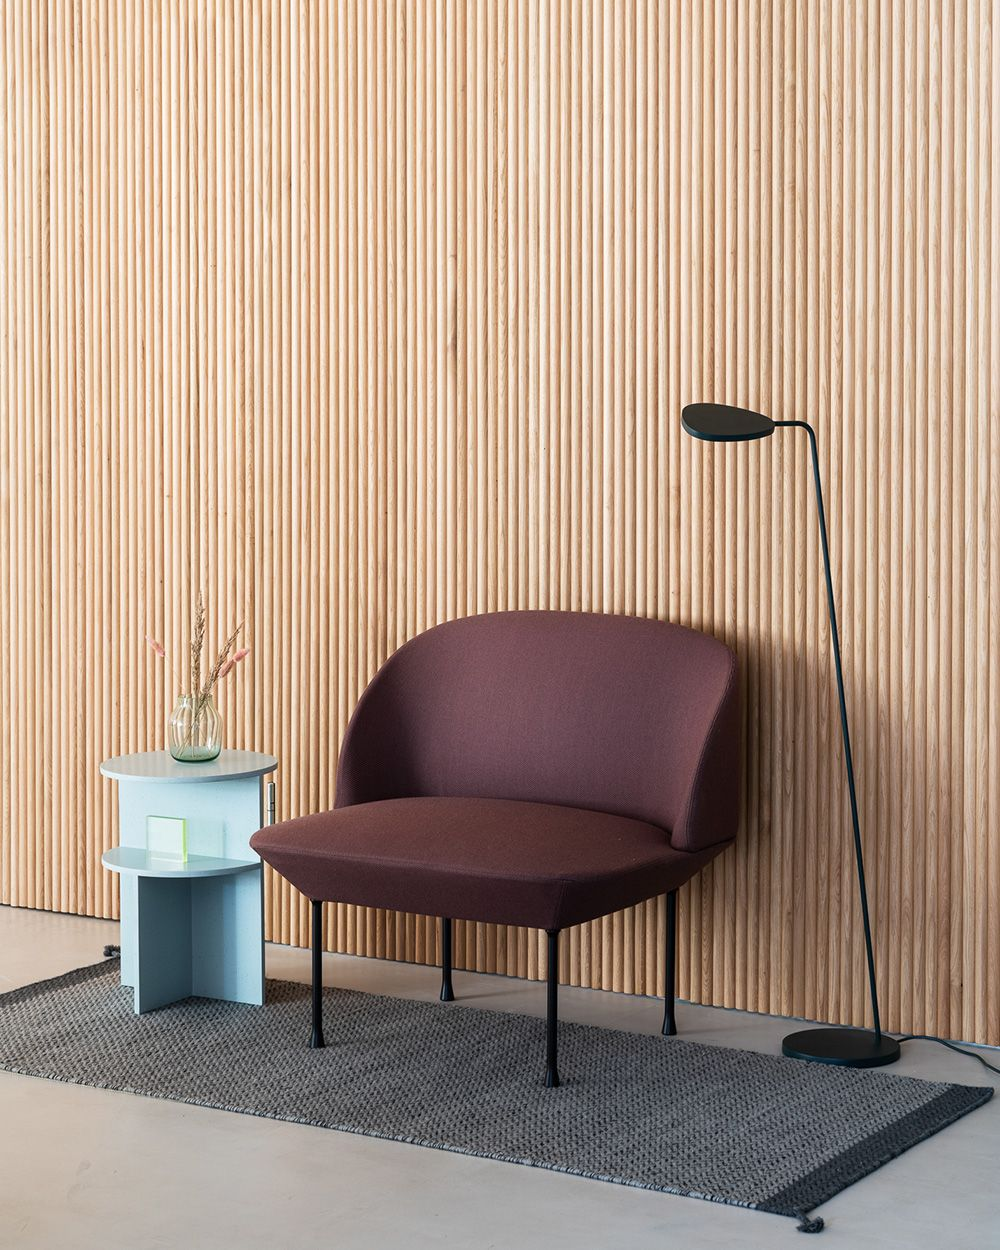 Minimal And Playful Upholstered Lounge Chair Decor Inspiration From Muuto With Re Scandinavian Furniture Design Living Room Inspiration Home Decor Inspiration